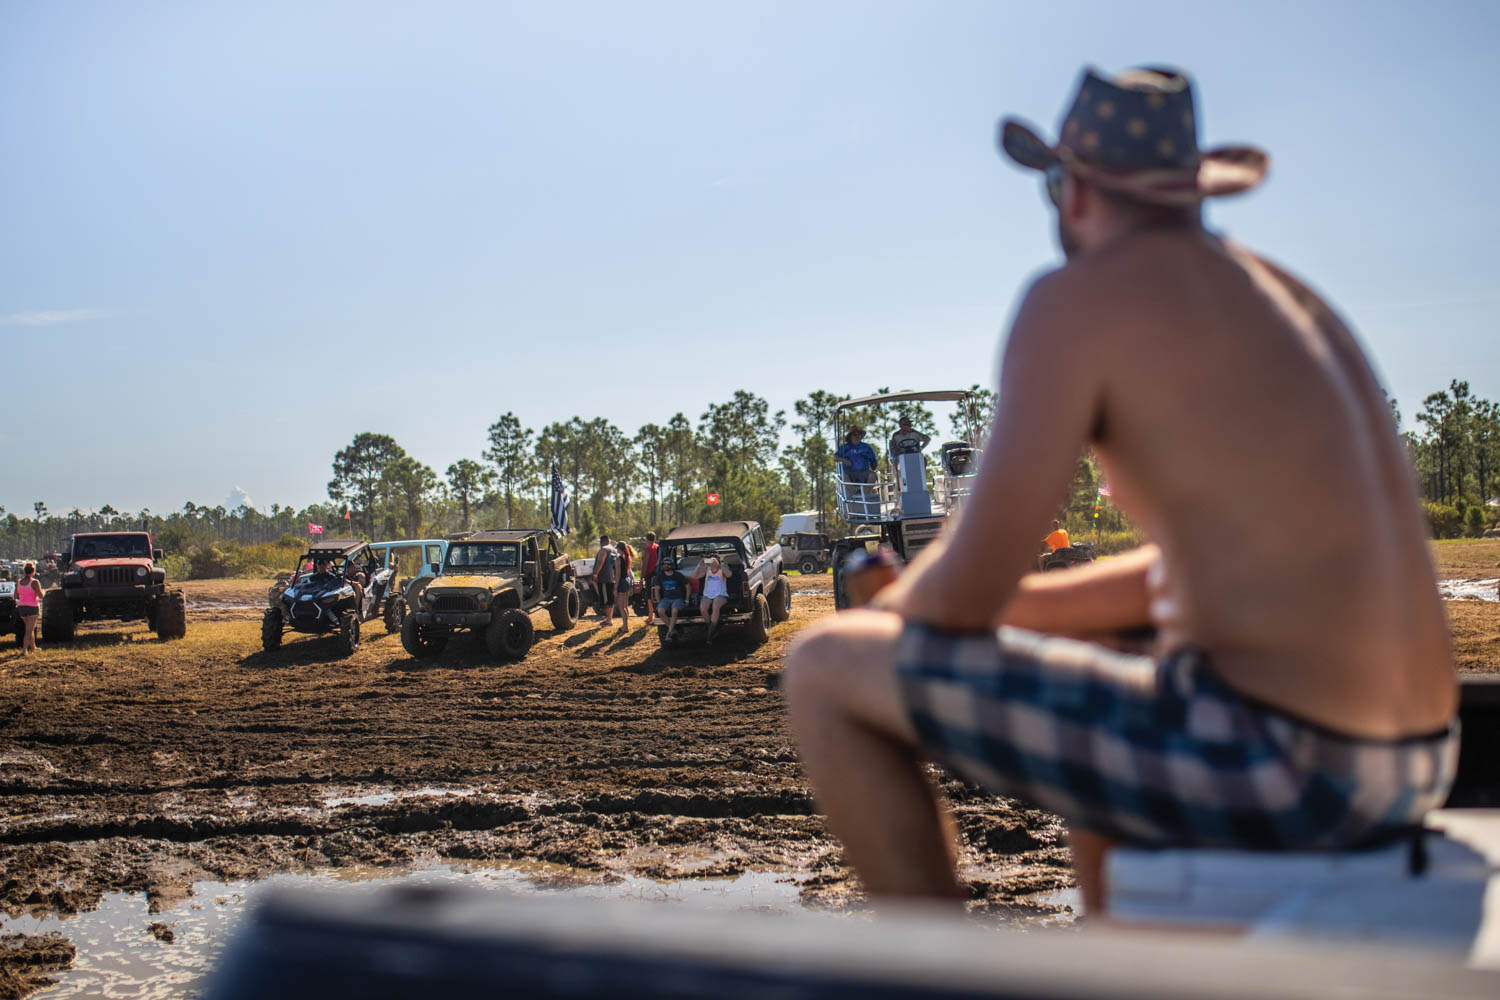 Jeeps, Broncos, side-by-sides, ATVs, and pontoon trucks are all part of the Redneck ecosystem.